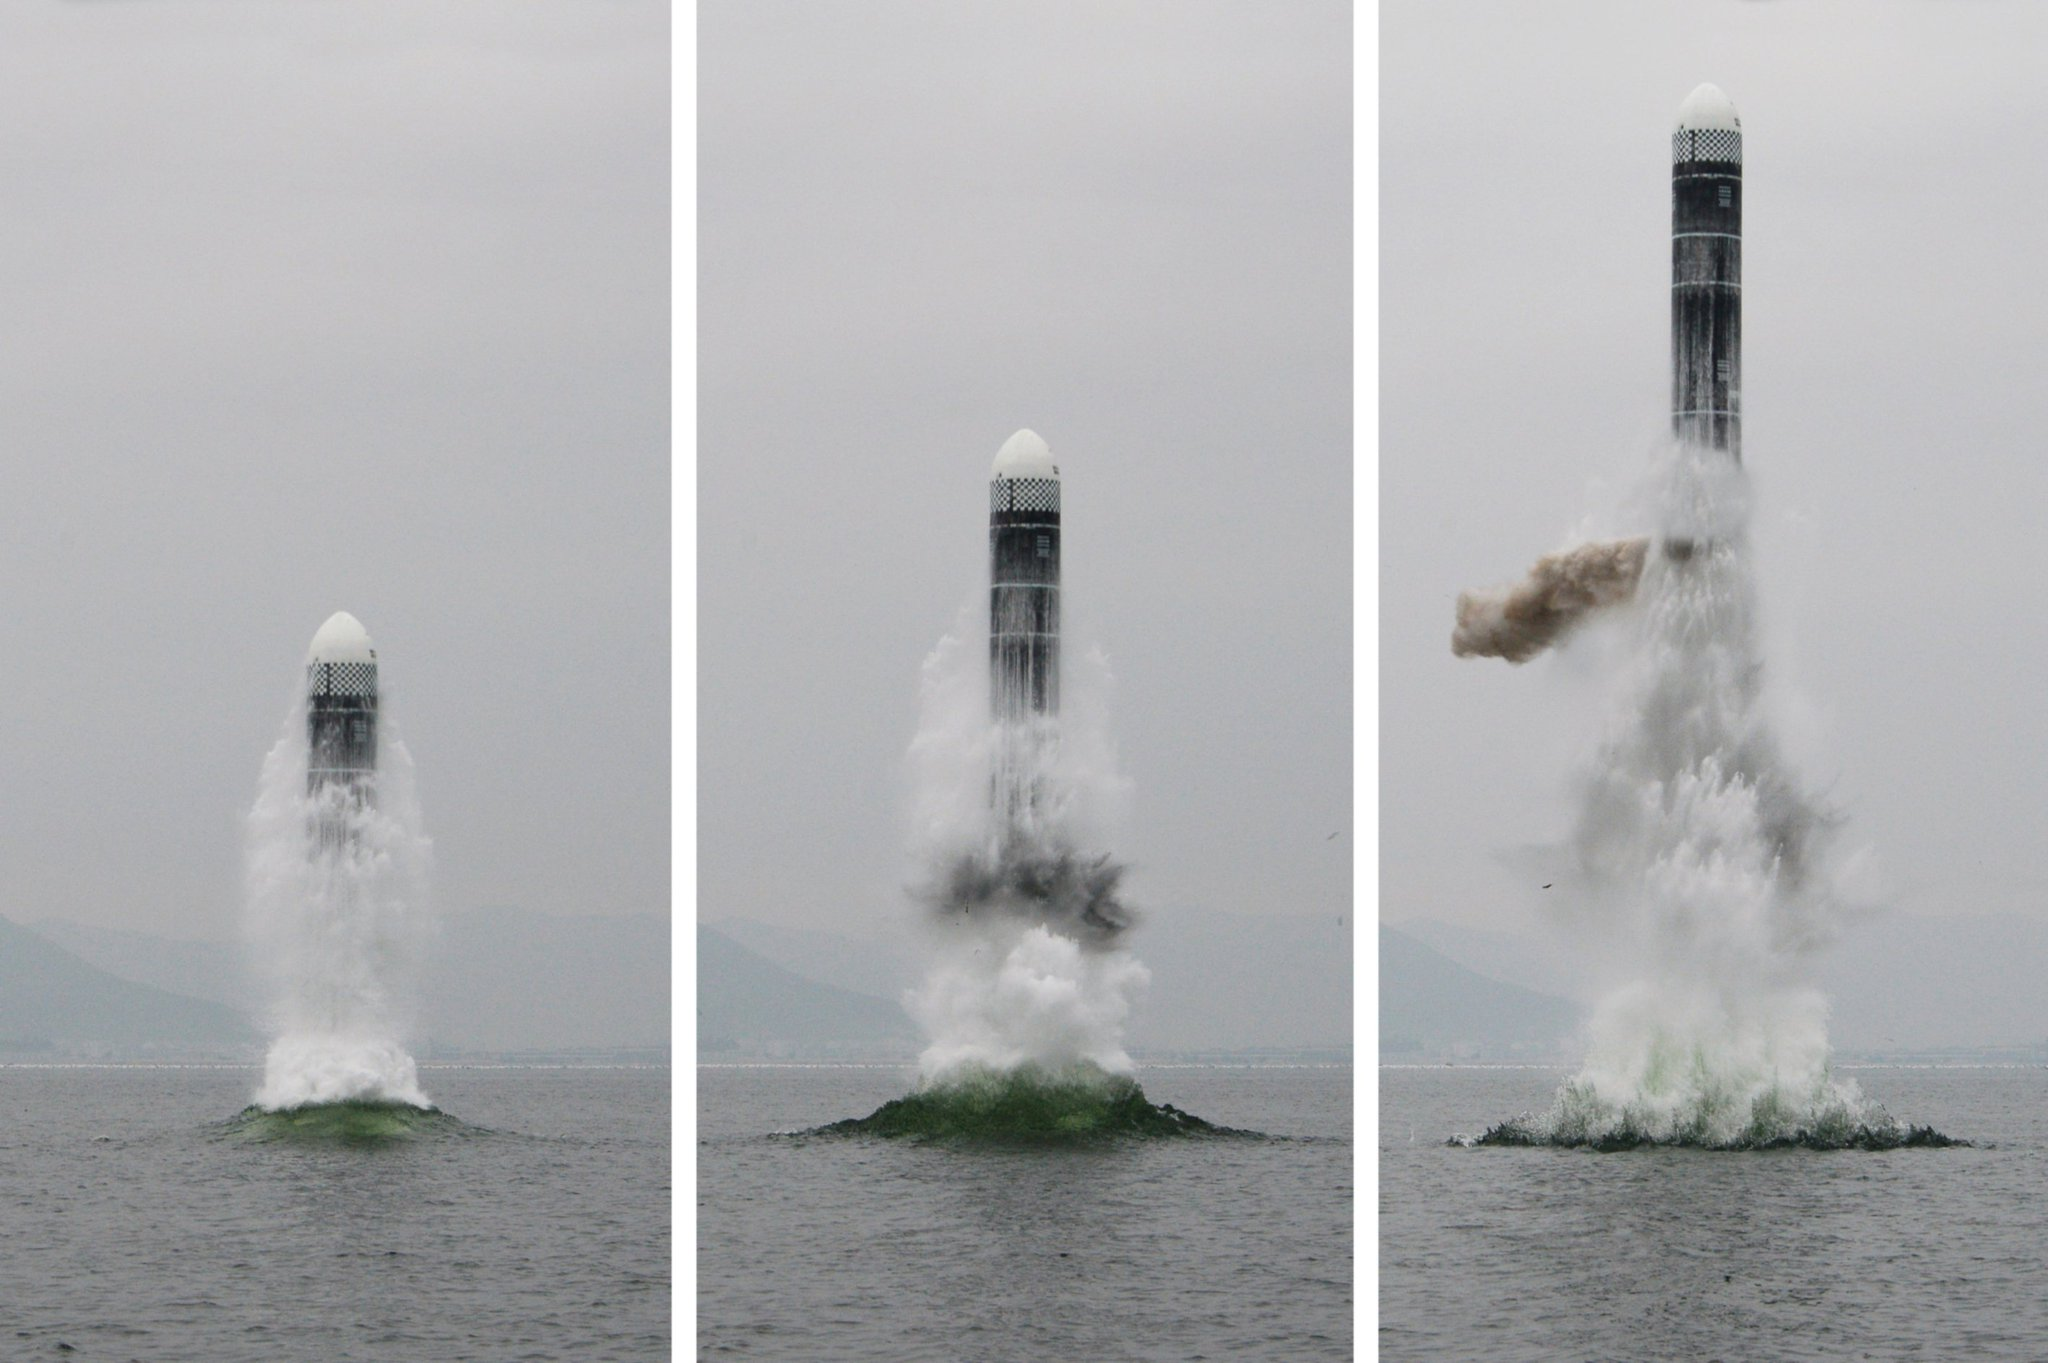 North Korea Completes Building Submarine-launched Ballistic Missiles (SLBMs)